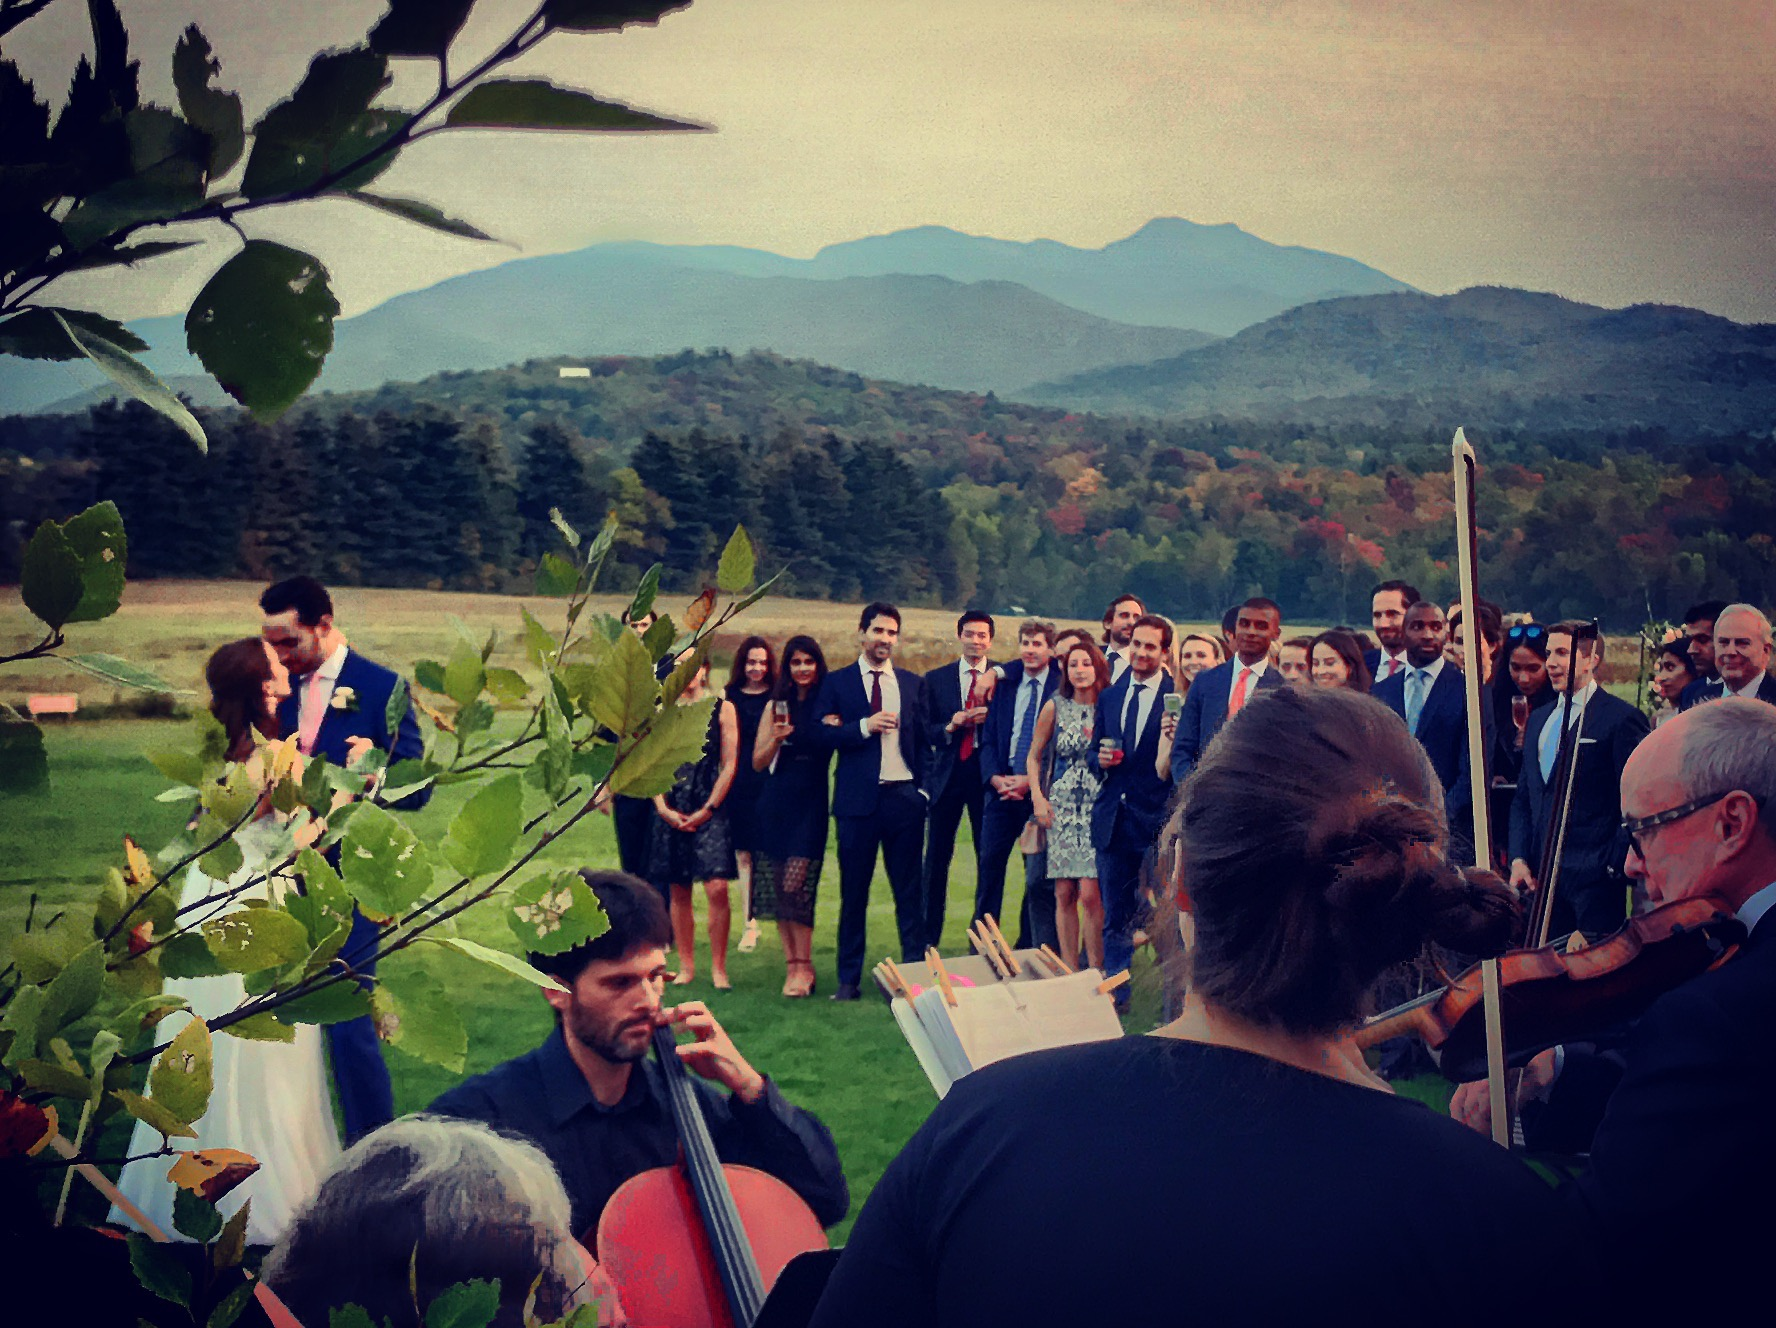 First Dance on the Great Lawn with the stunning Mt Mansfield in the background. Image: S DePalma iphone